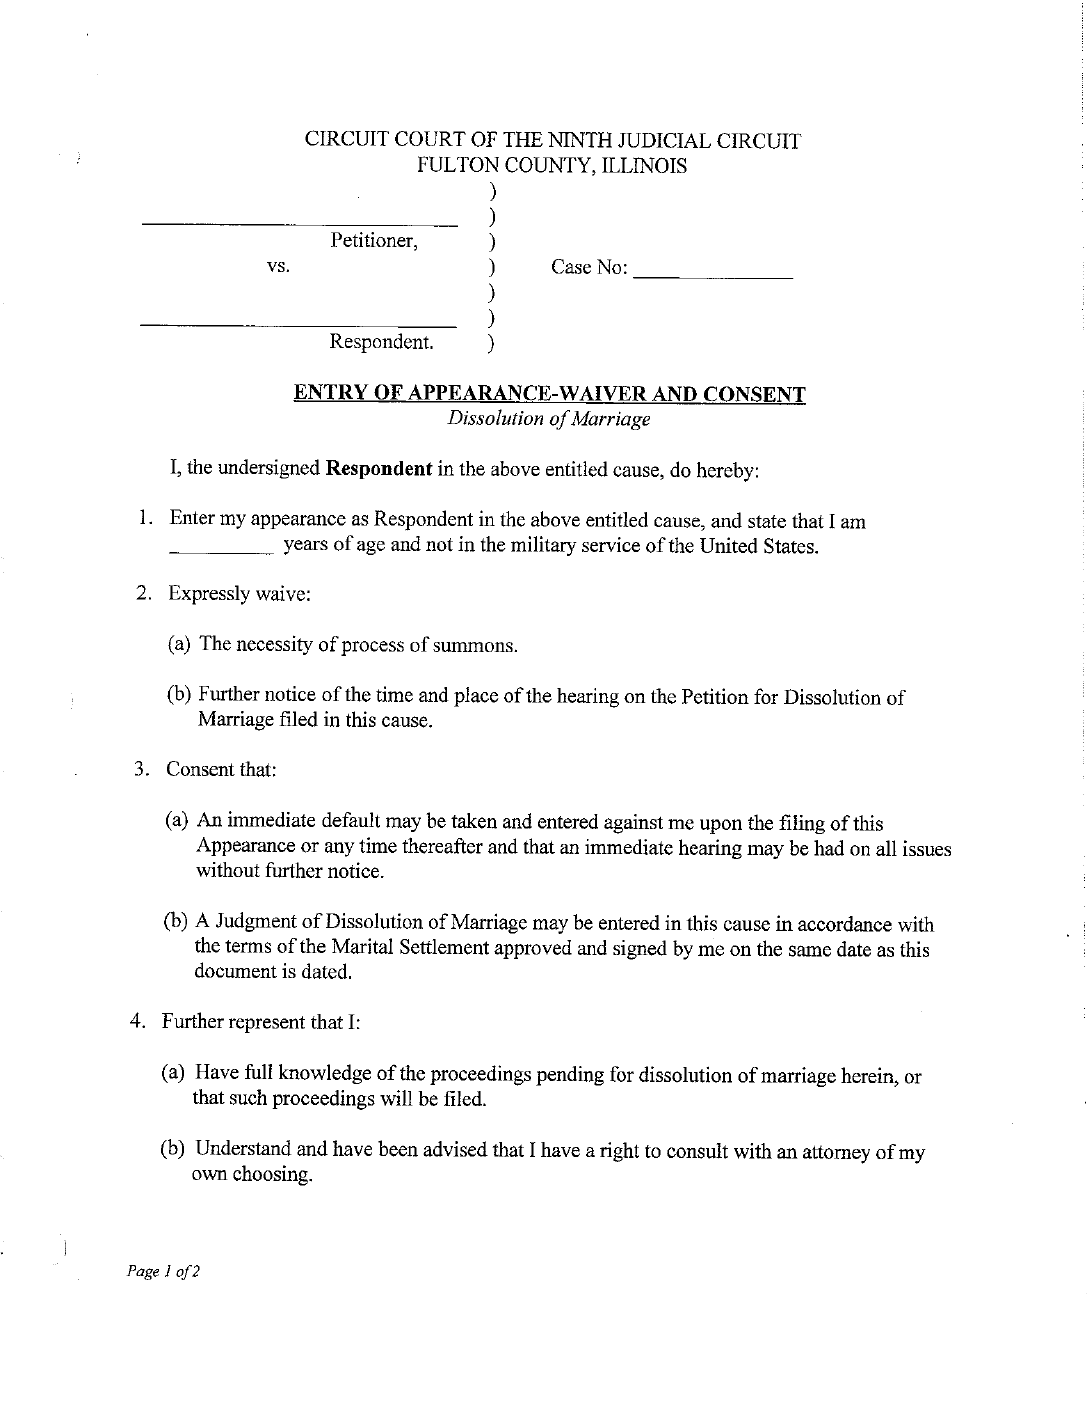 Dissolution Of Marriage Form Without Minor Children Illinois Free Download